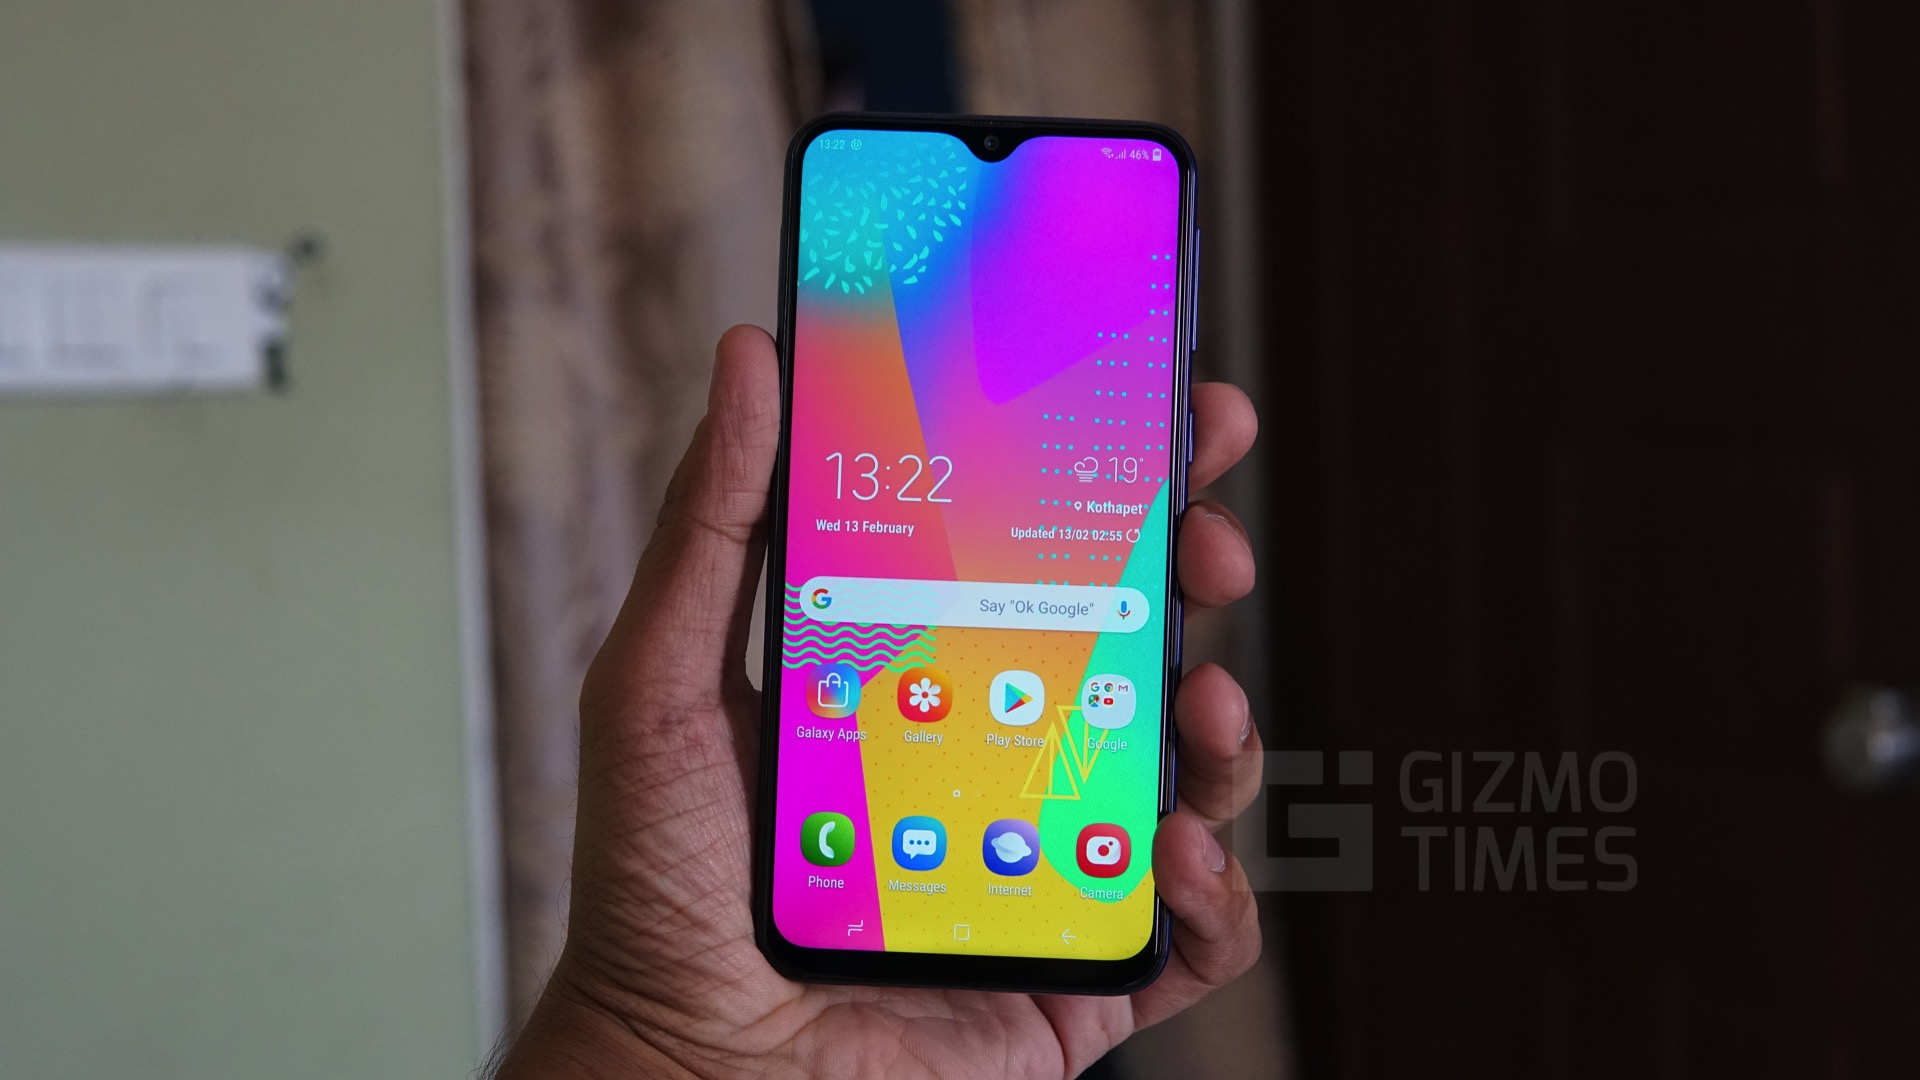 Samsung Galaxy M20 Review - Decent performance and battery